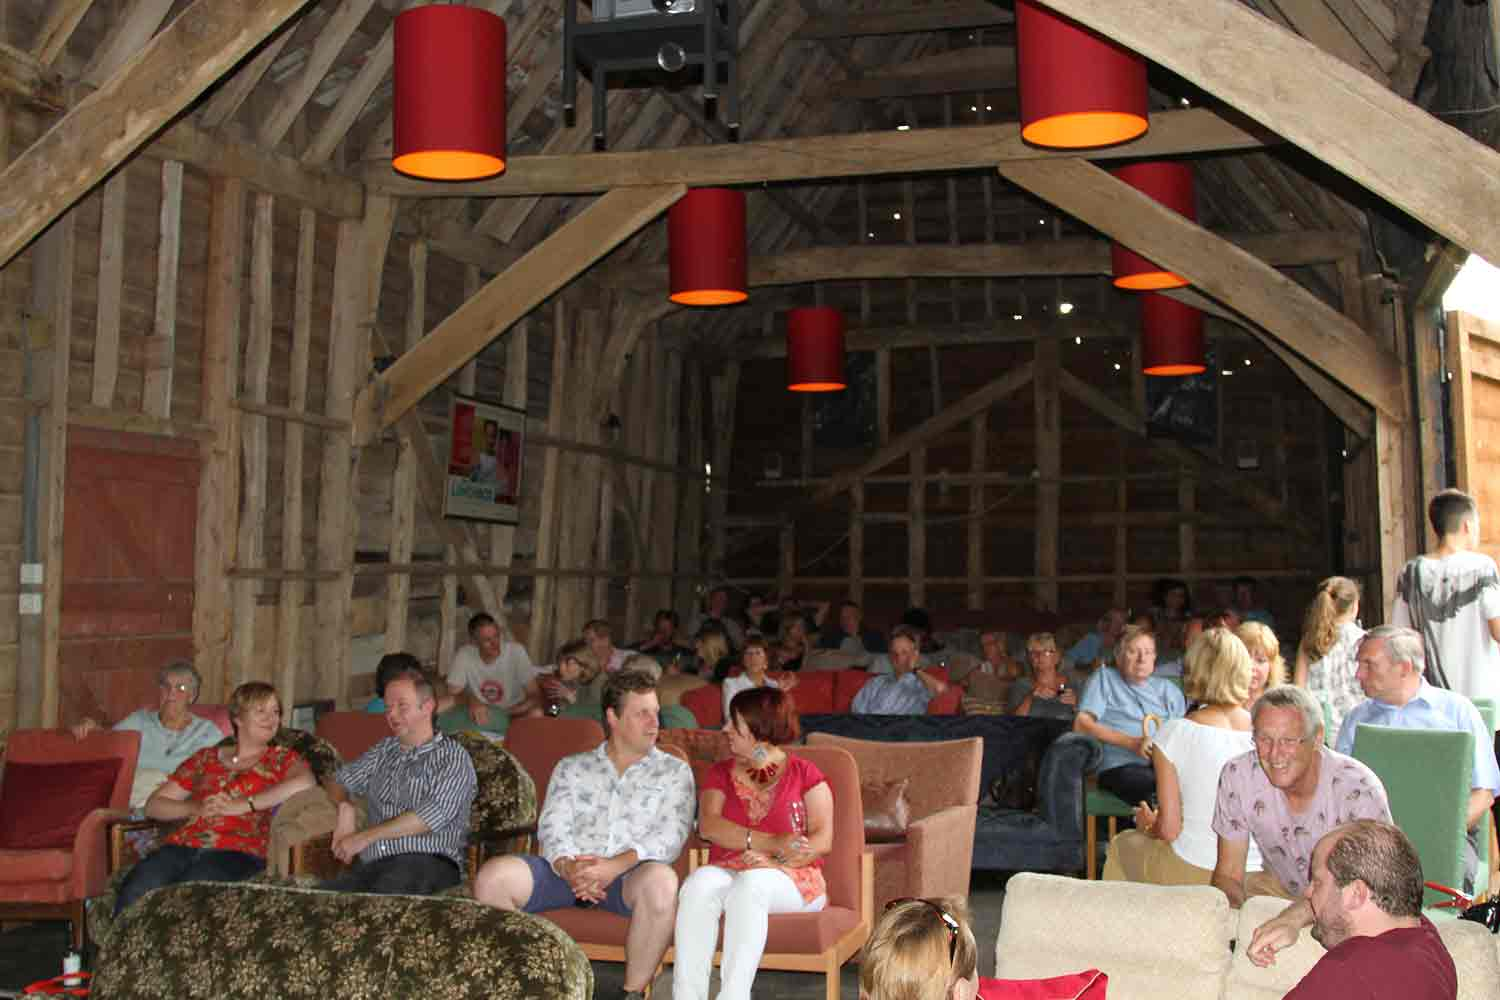 Our lovely threshing barn adorned with shades and ecclectic mix of comfy sofas